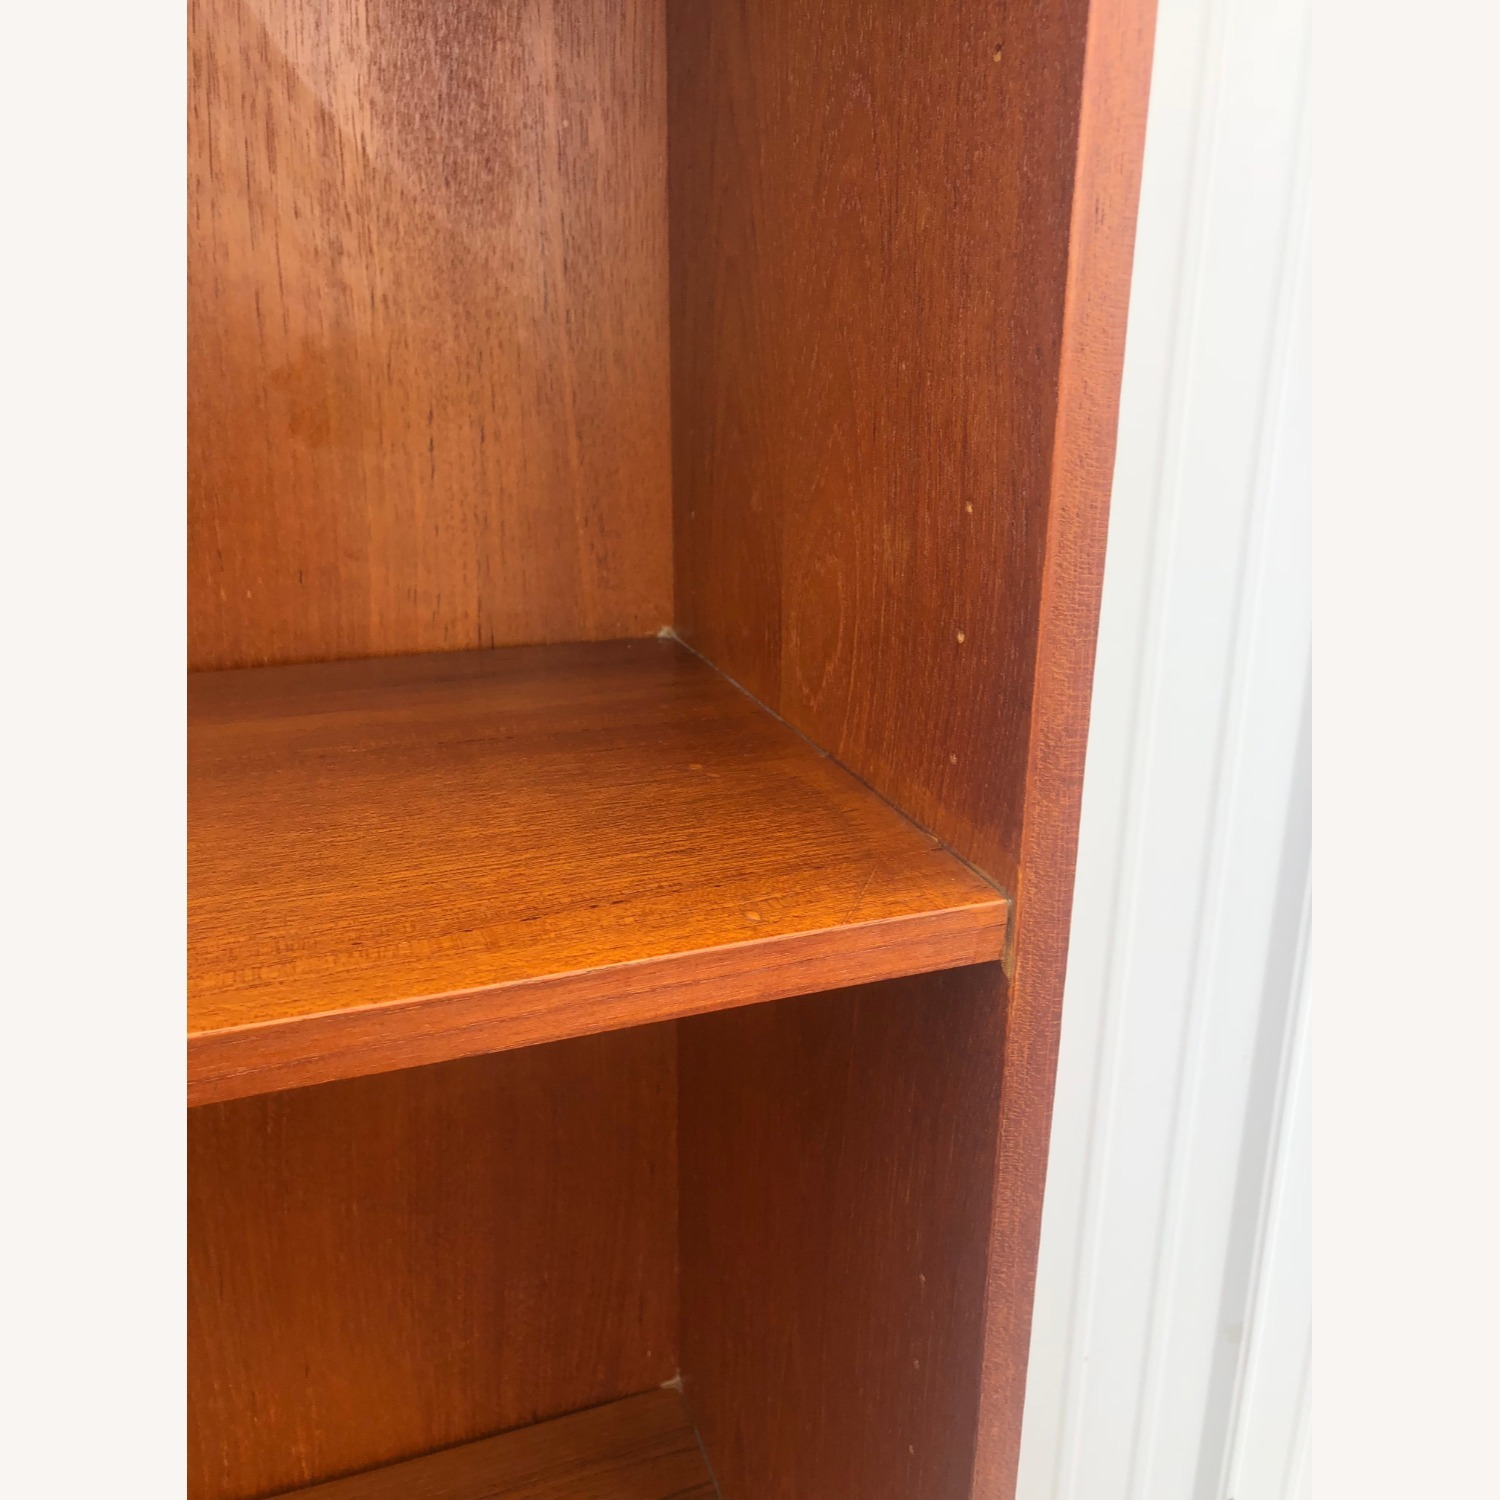 Danish Modern Teak Shelving with Cabinet - image-13